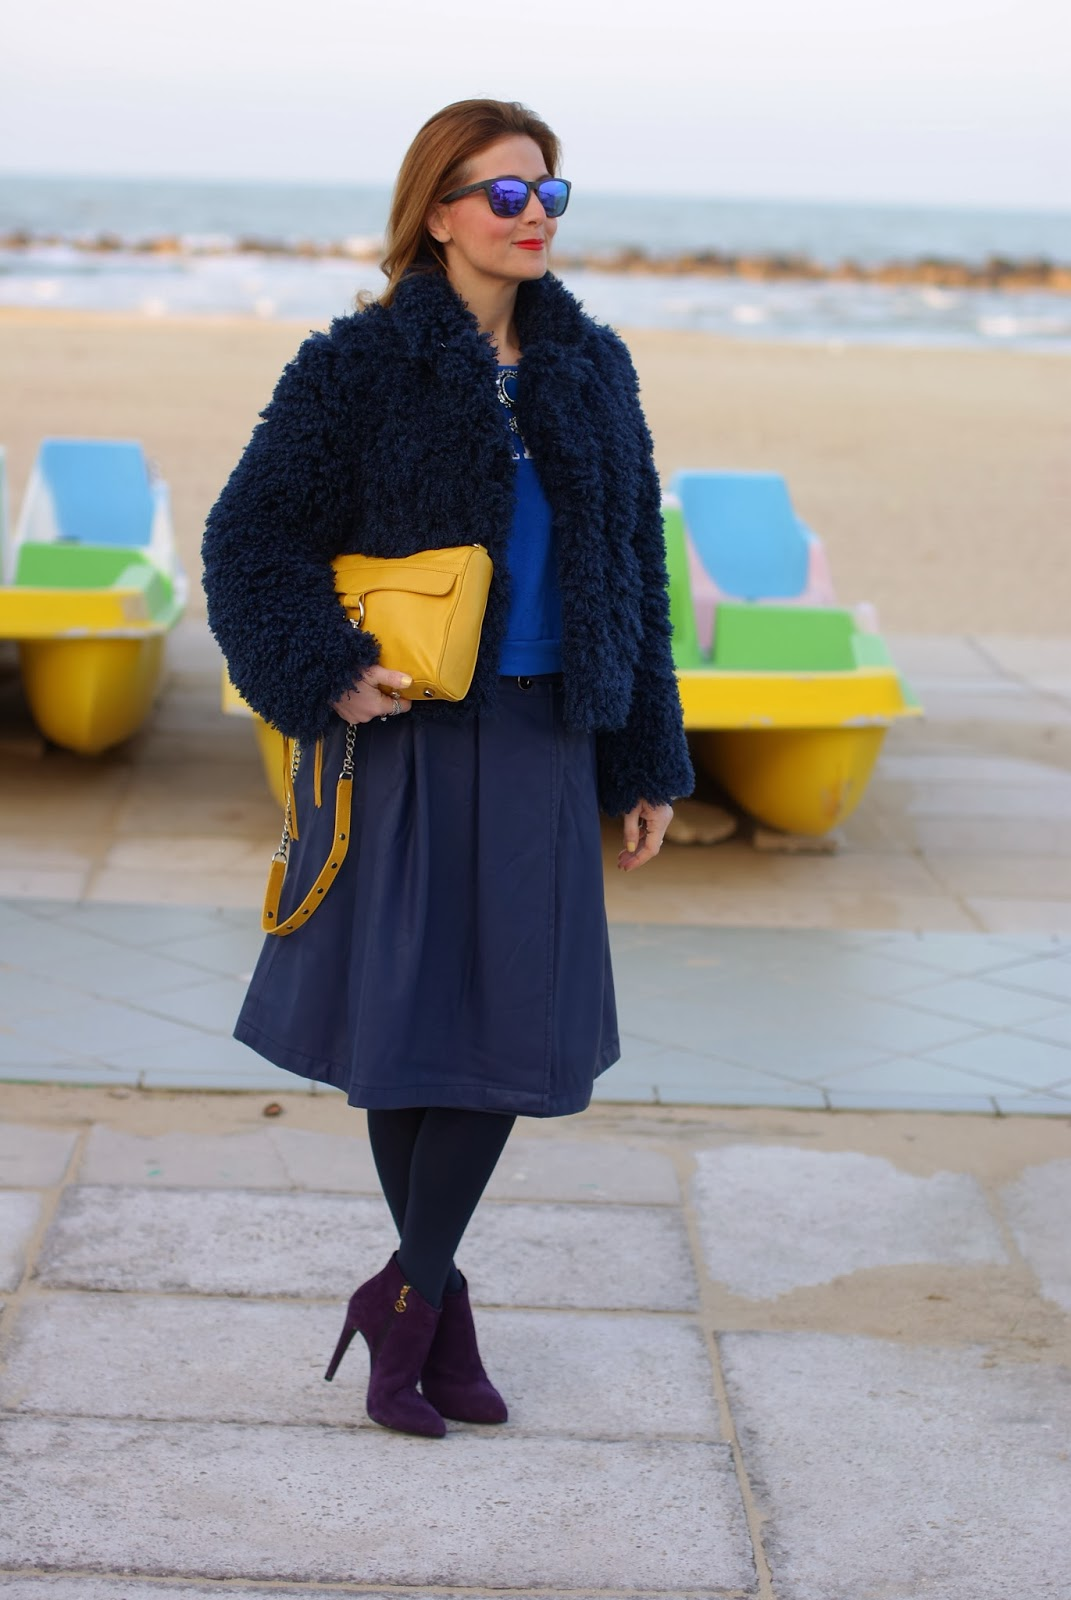 So Allure faux fur jacket, Fabi shoes, Rebecca Minkoff yellow mac clutch, Fashion and Cookies, fashion blogger